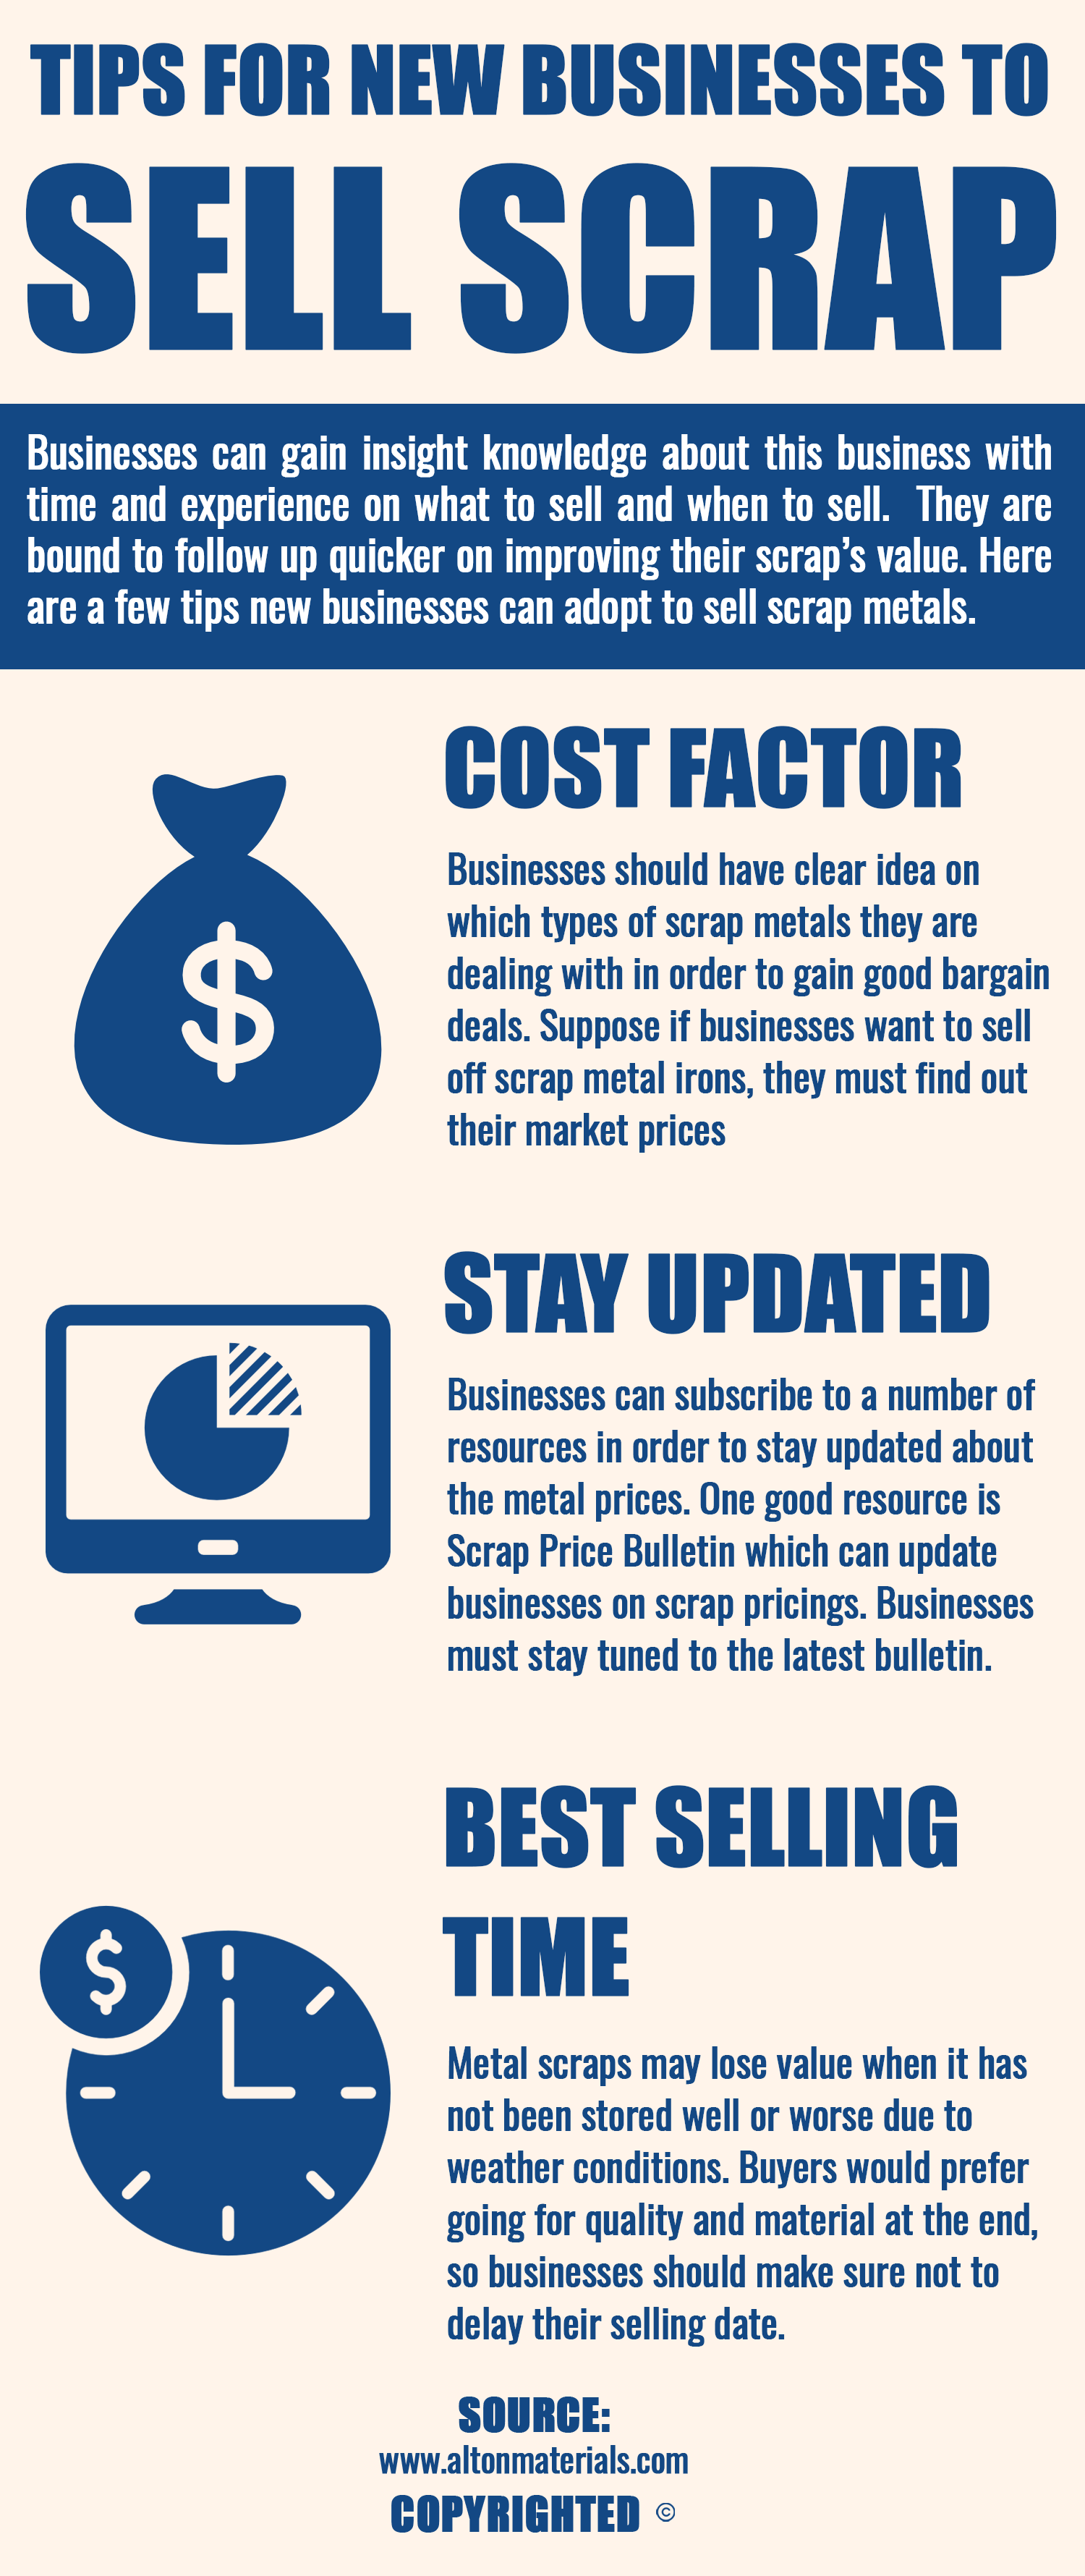 There are few tips for new businesses to sell their scrap materials ...